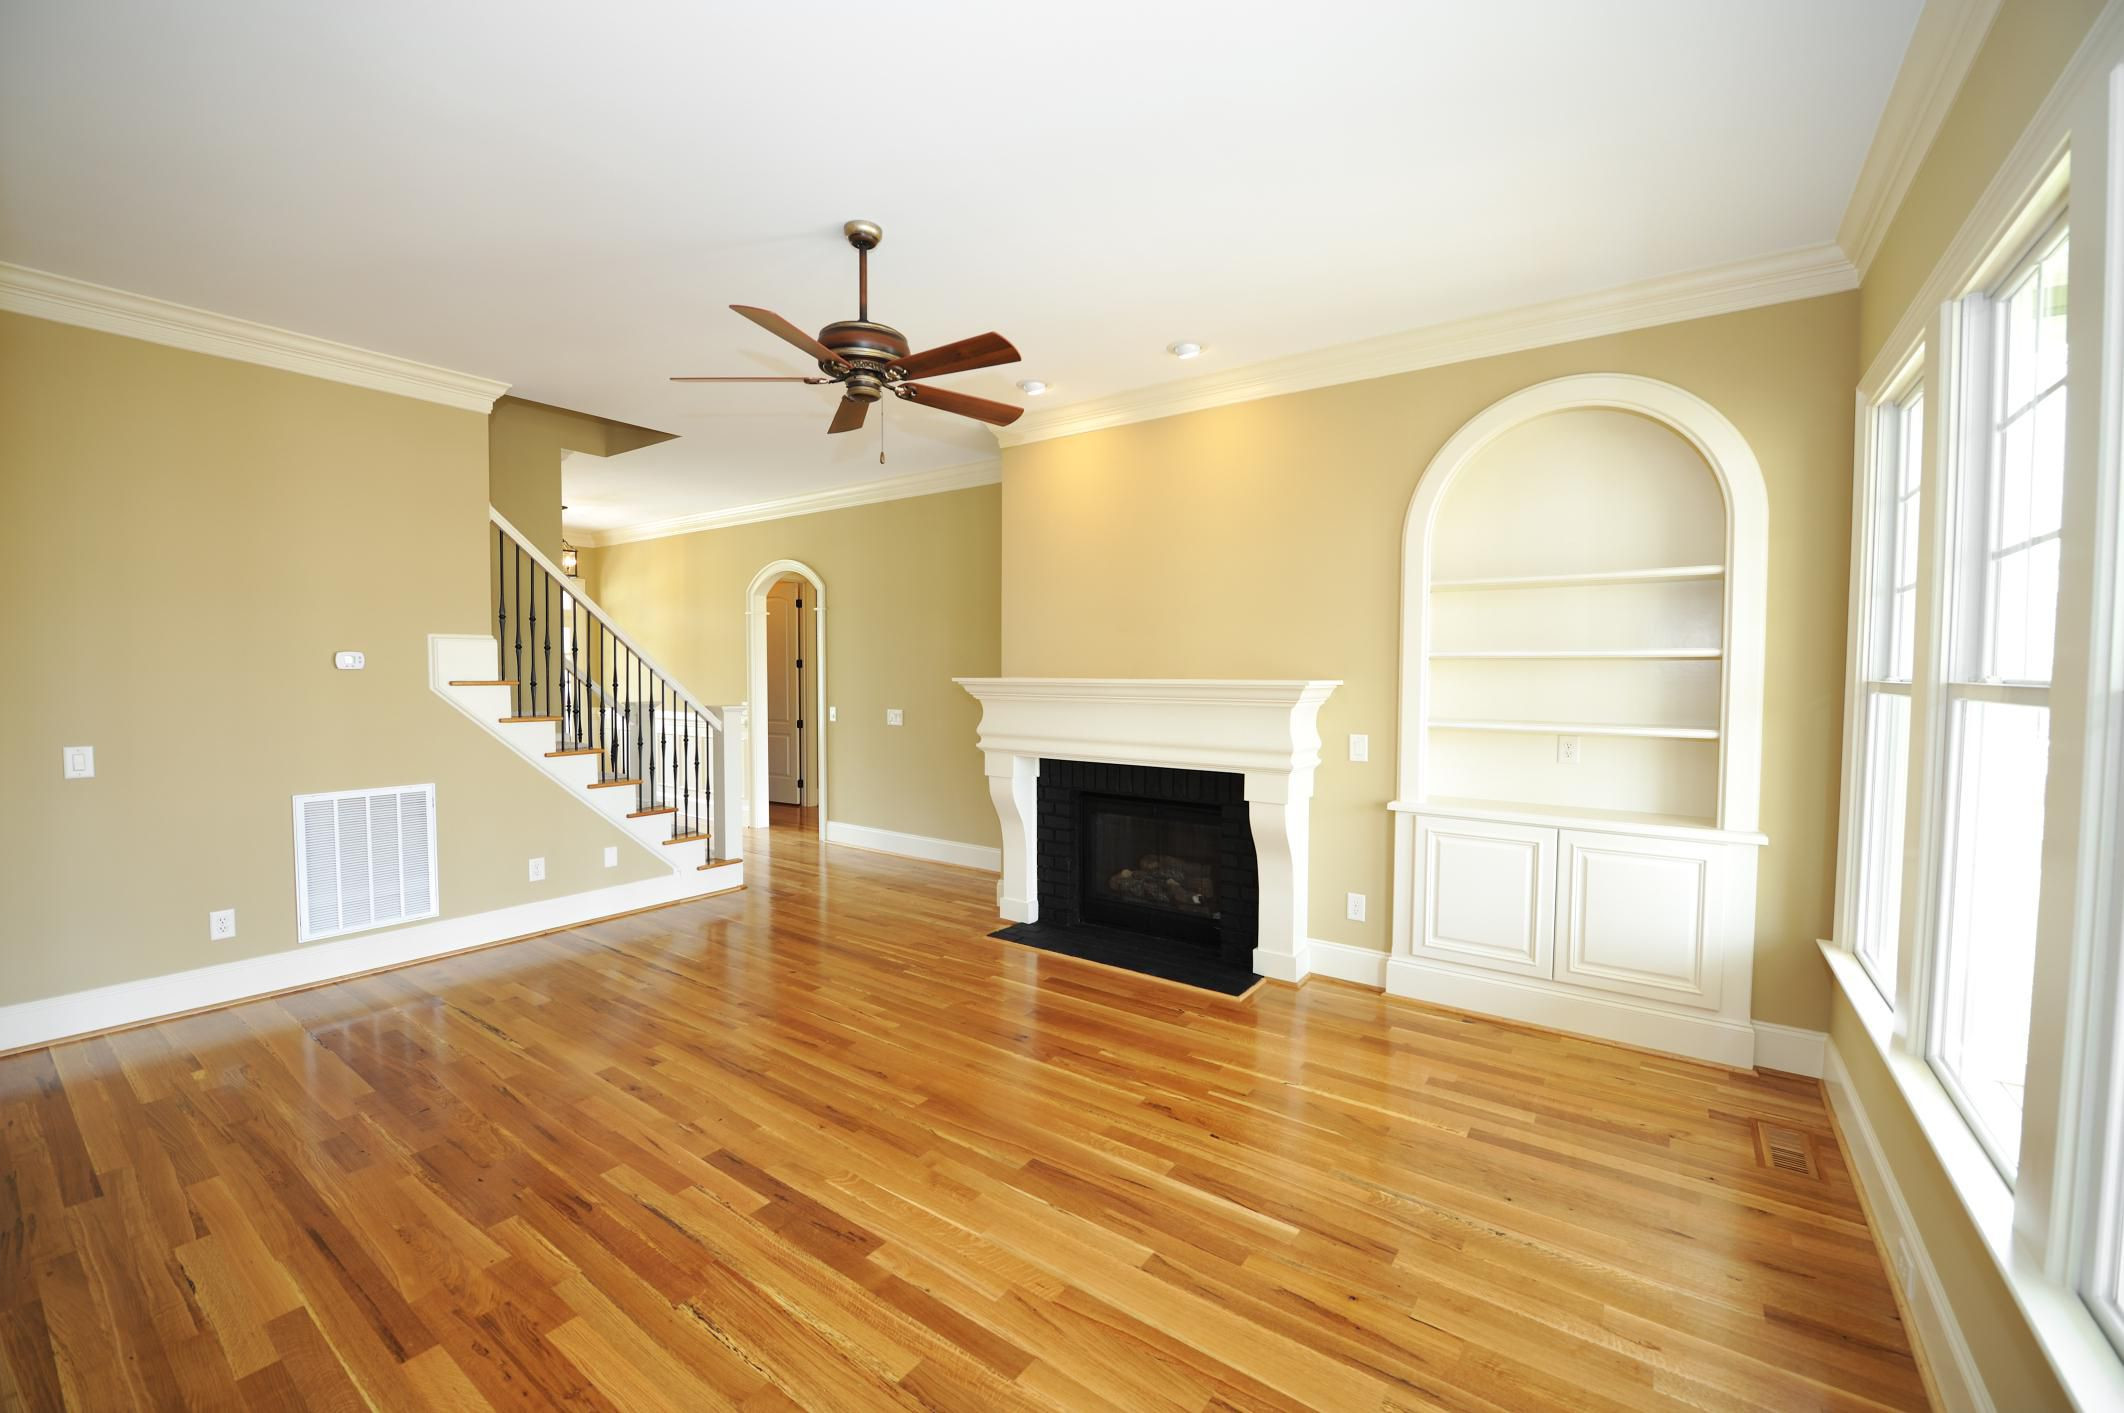 hardwood floor types hardness of solid and engineered wood flooring regarding 157328869 56a4a2ac5f9b58b7d0d7ef49